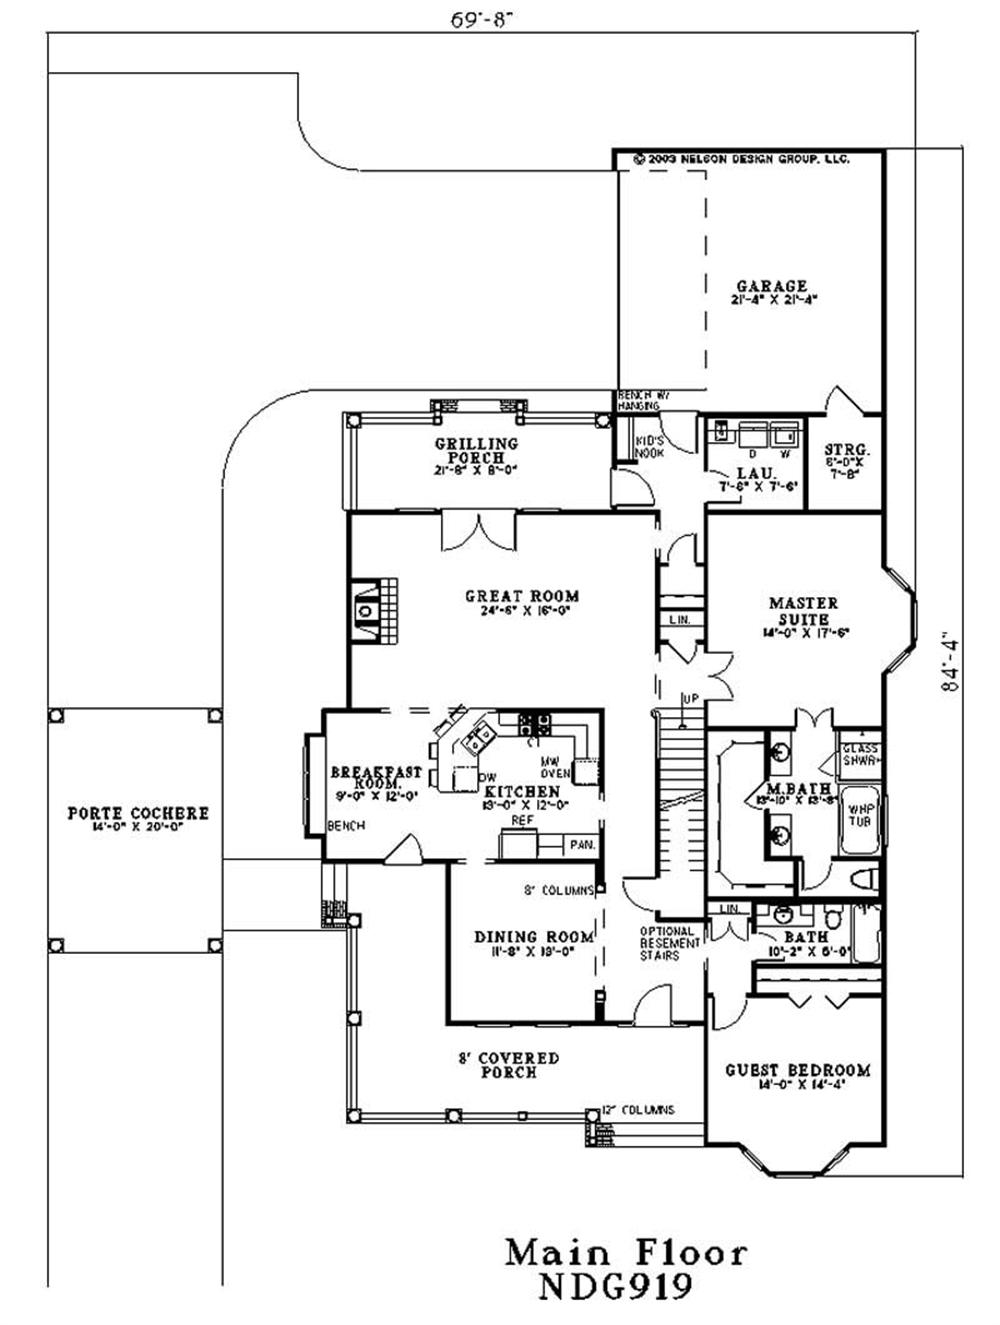 Large Images For House Plan 153 1687